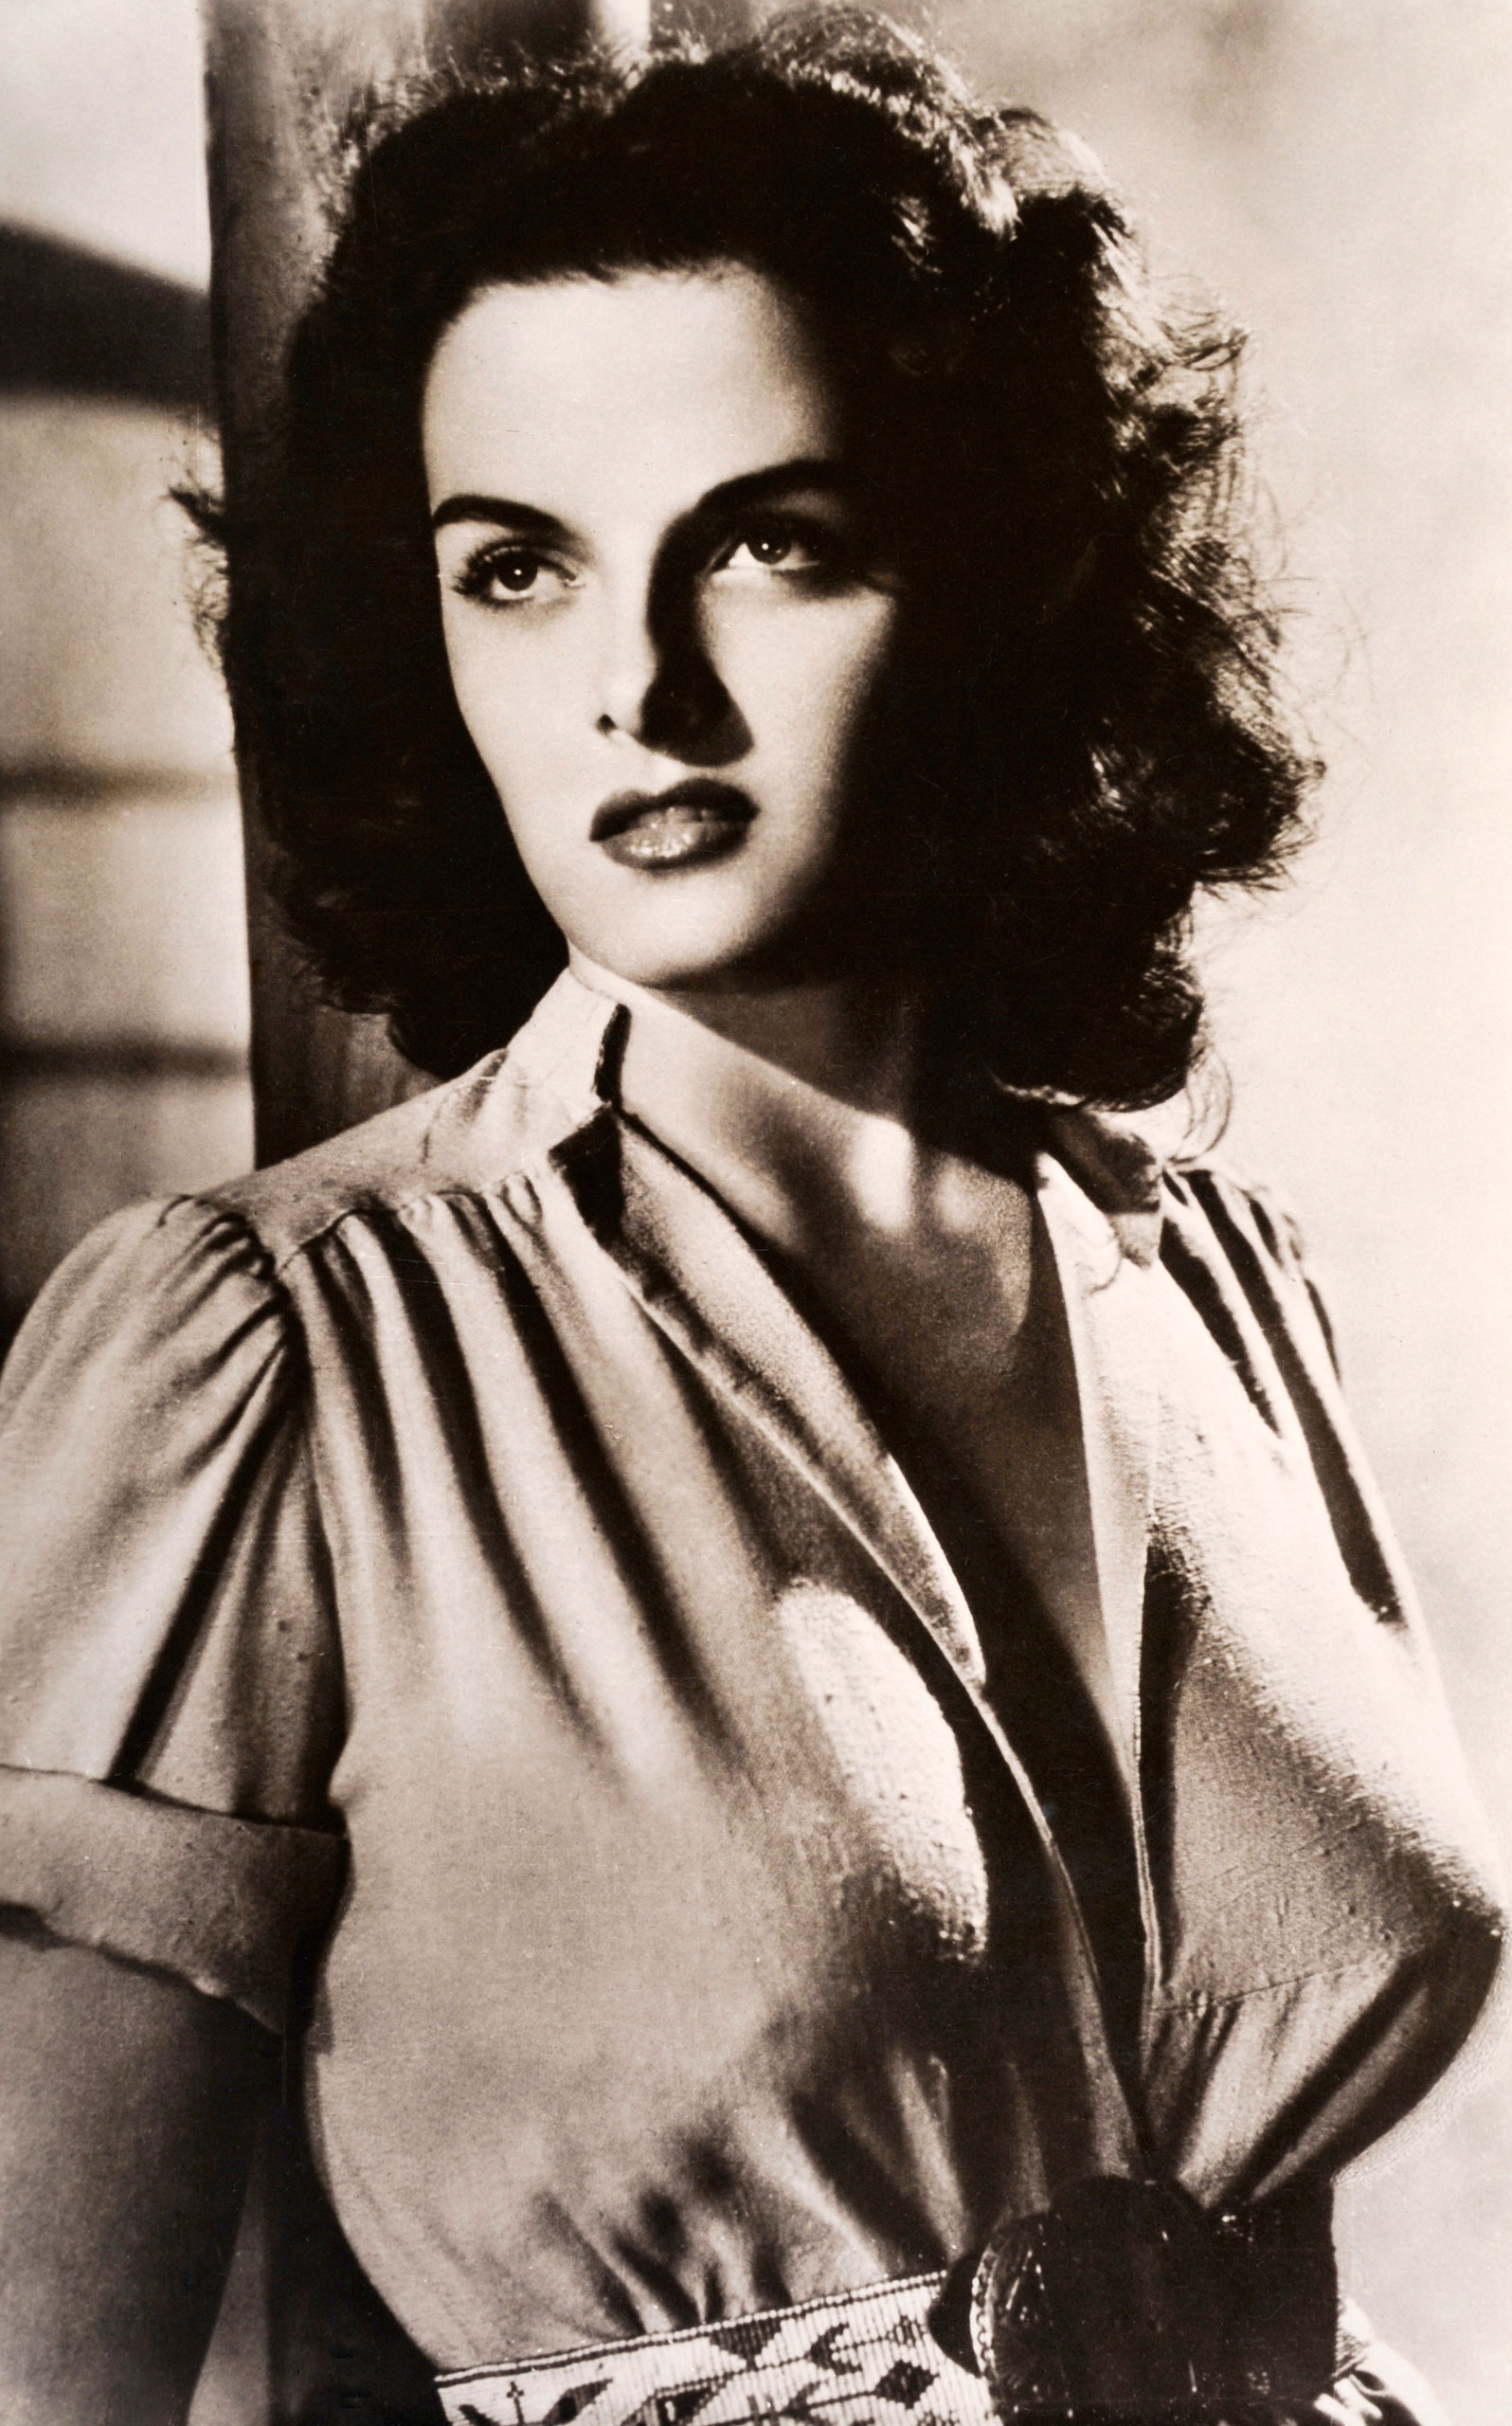 The Bullet Bra                                Popularized by actresses such as Jane Russell (pictured here), Lana Turner and Marilyn Monroe, these conical bras came into style in the 1940s and 50s and gave rise to the famed 'Sweater Girl'.